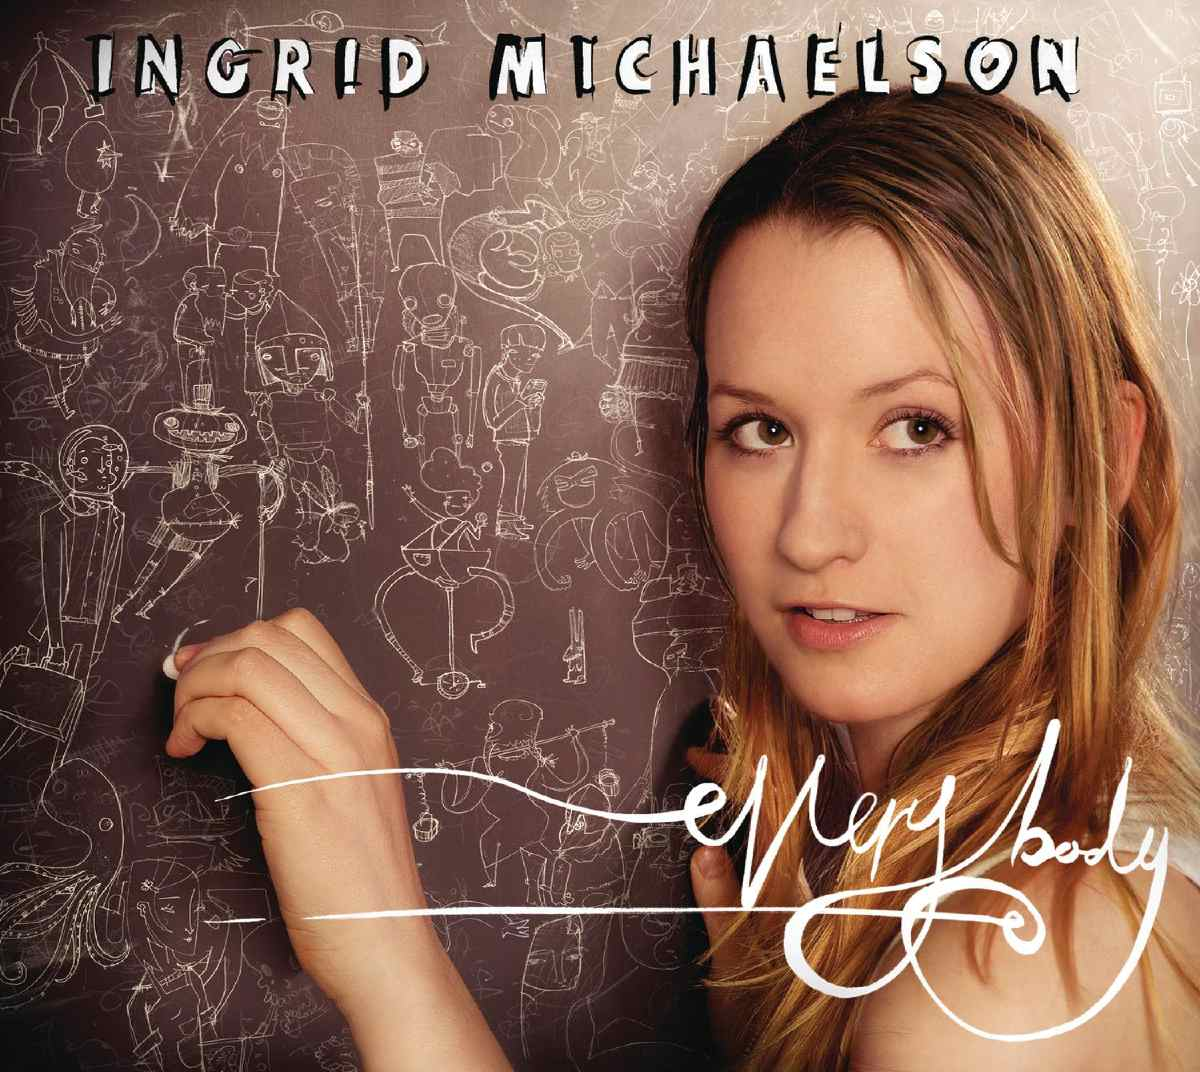 Turn to Stone by Ingrid Michaelson